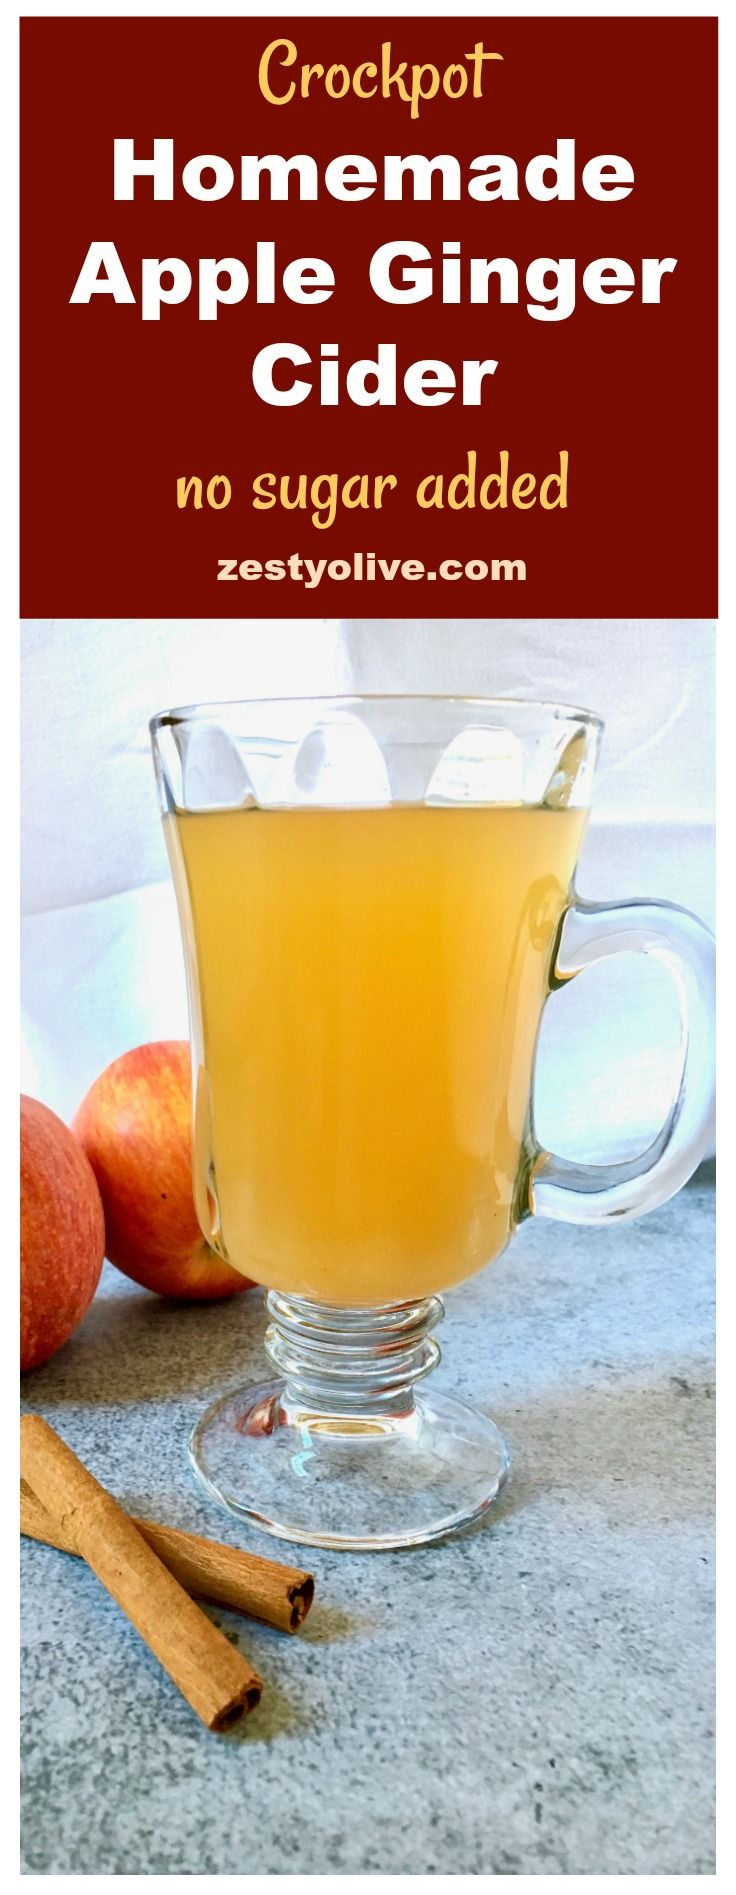 This Easy Homemade Apple Ginger Cider Recipe with no added sugar will fill your home with aromas of the season: apple, orange, ginger, cinnamon and cloves, while it simmers in your crock pot. #apples #cider #crockpot #slowcooker #beverage #holidays #applecider #homemade #food #recipes zestyolive.com